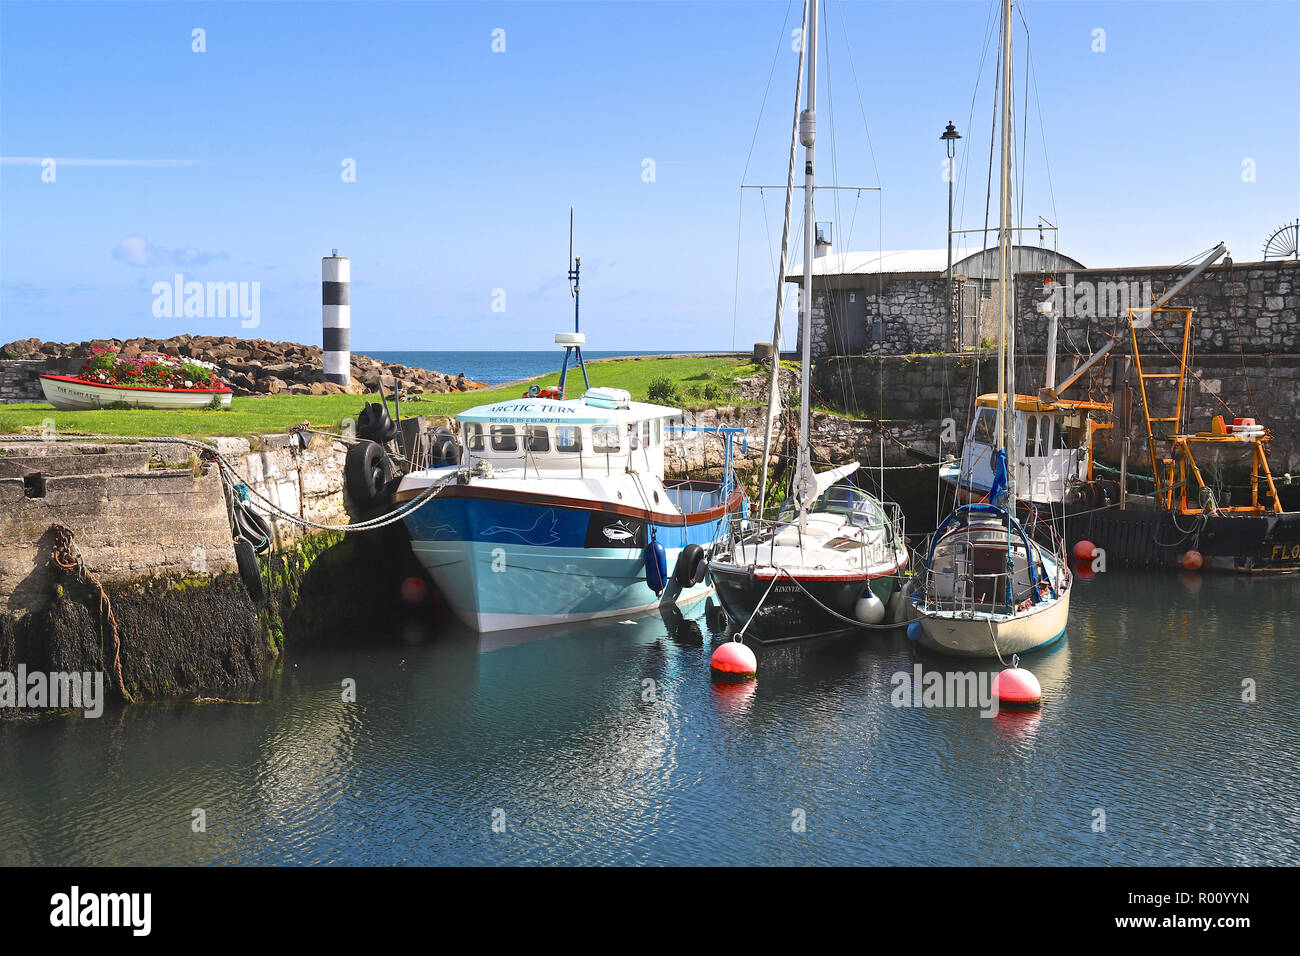 Boats lying in Carnlough Harbour, County Antrim, Northern Ireland, U.K. - Stock Image